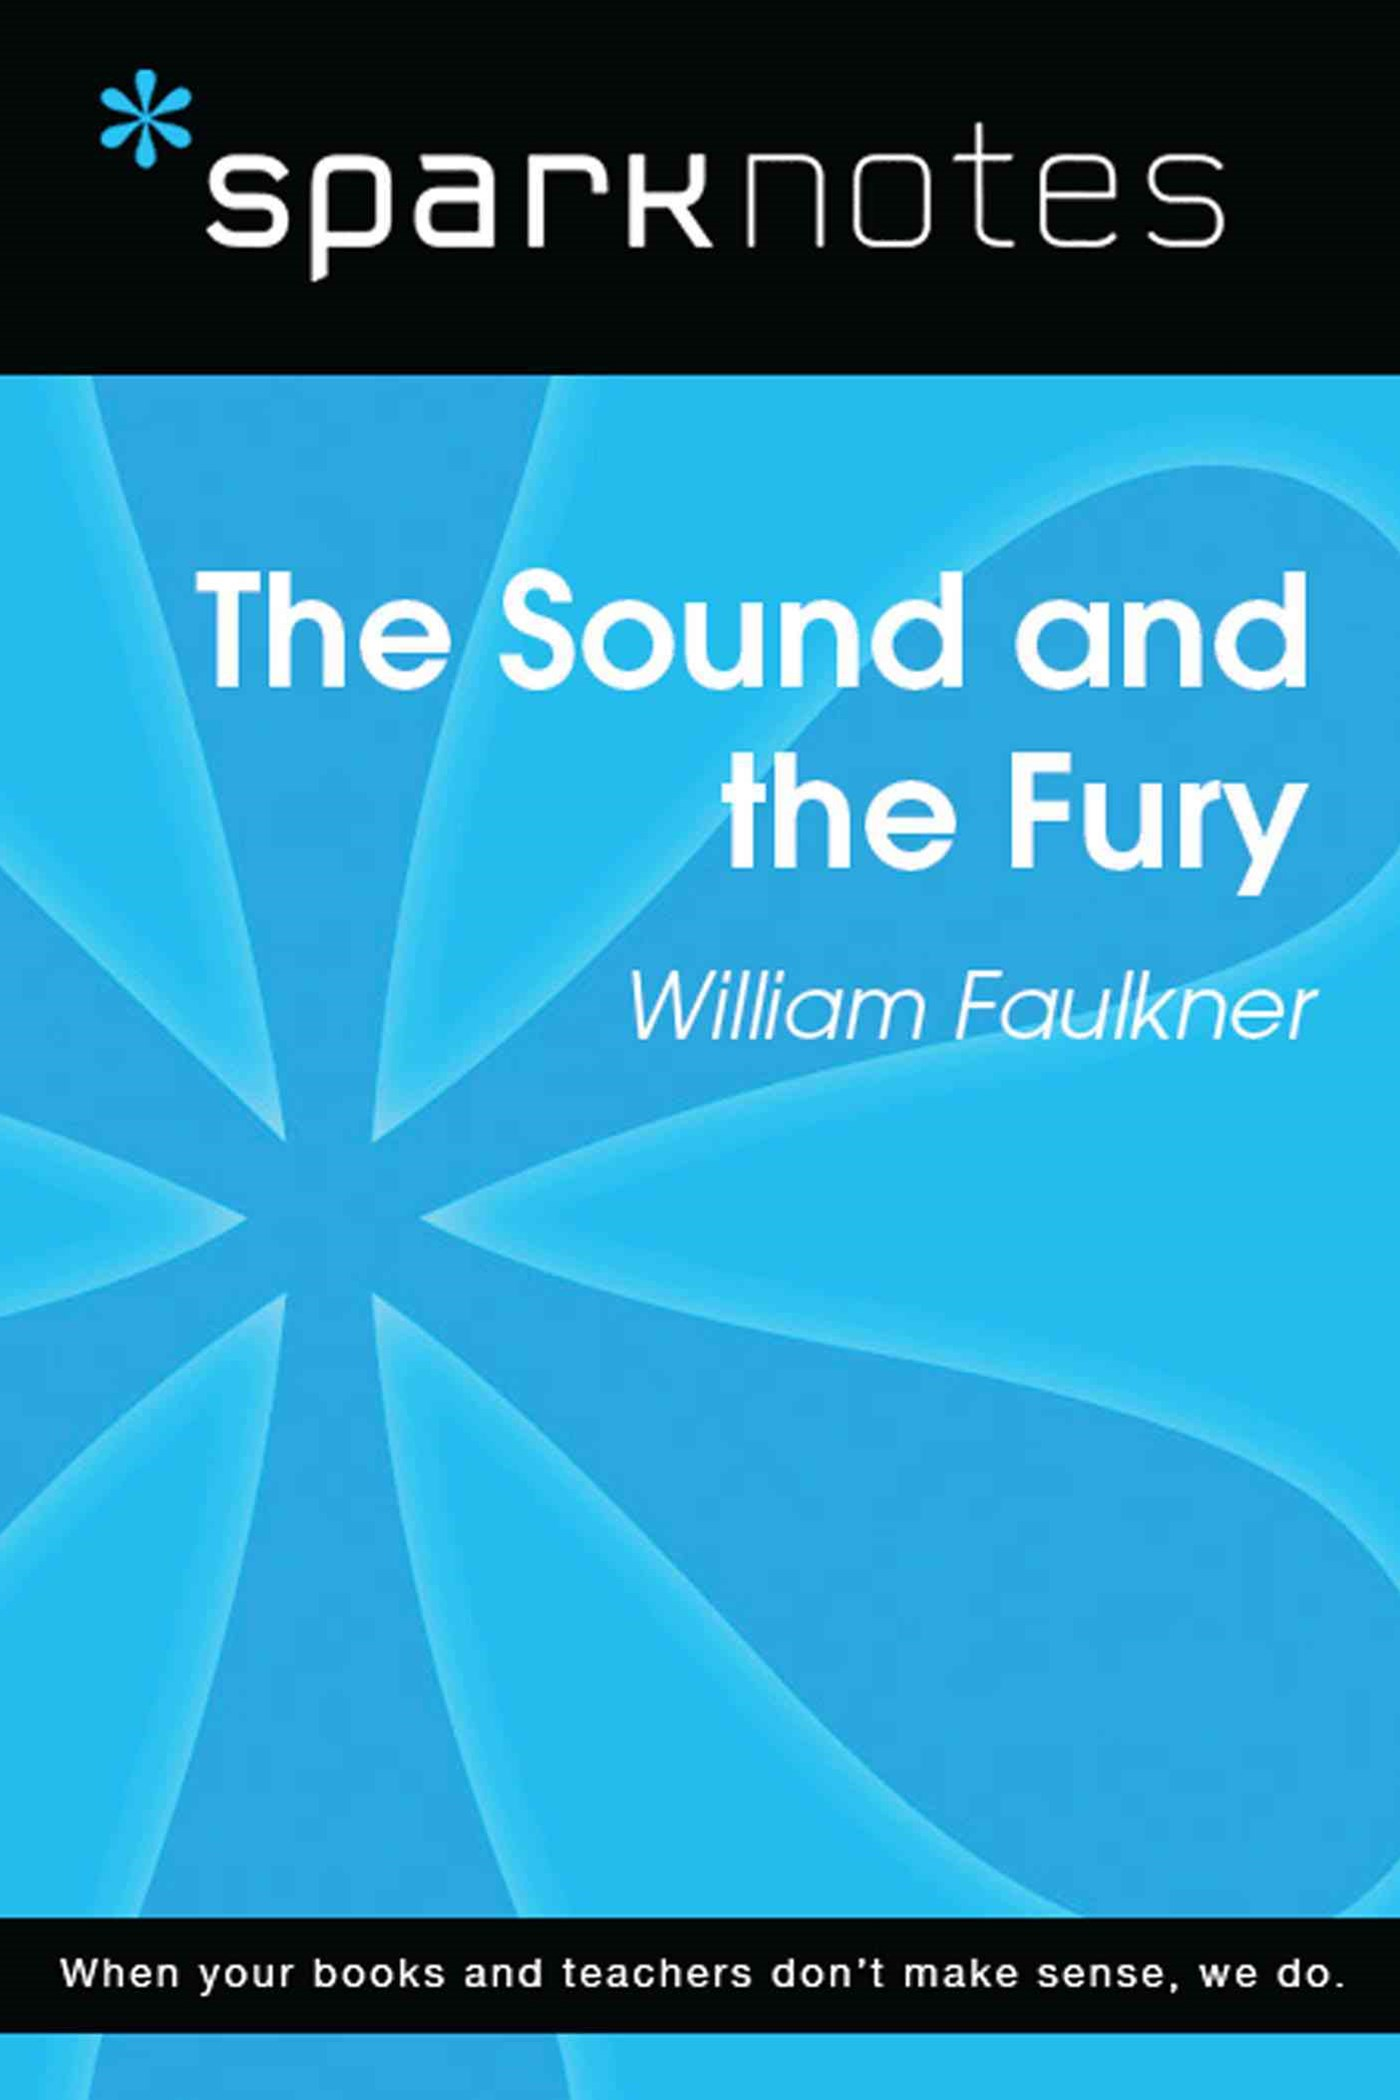 The Sound and the Fury (SparkNotes Literature Guide)